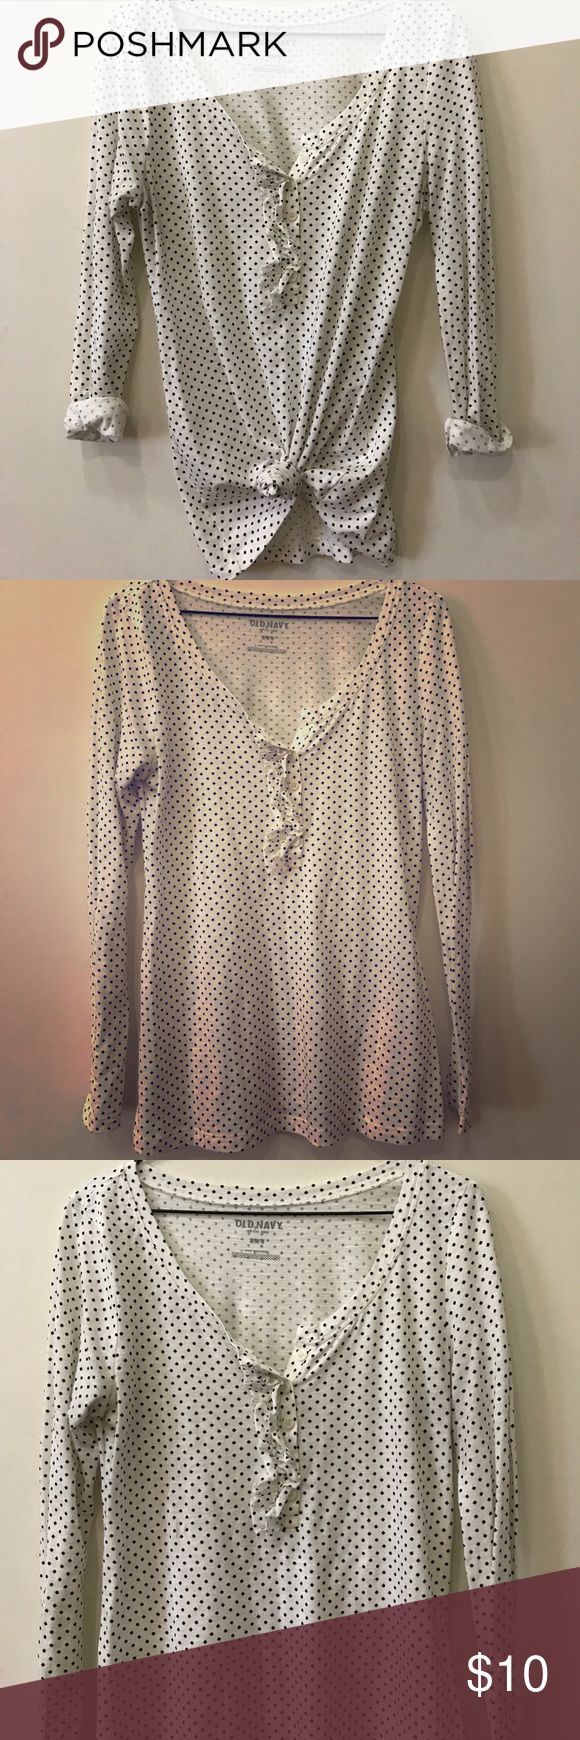 Old Navy Long Sleeve Polka Dot Tee Looks cute styled different ways. Ruffle detail on button up front. Old Navy Tops Tees - Long Sleeve